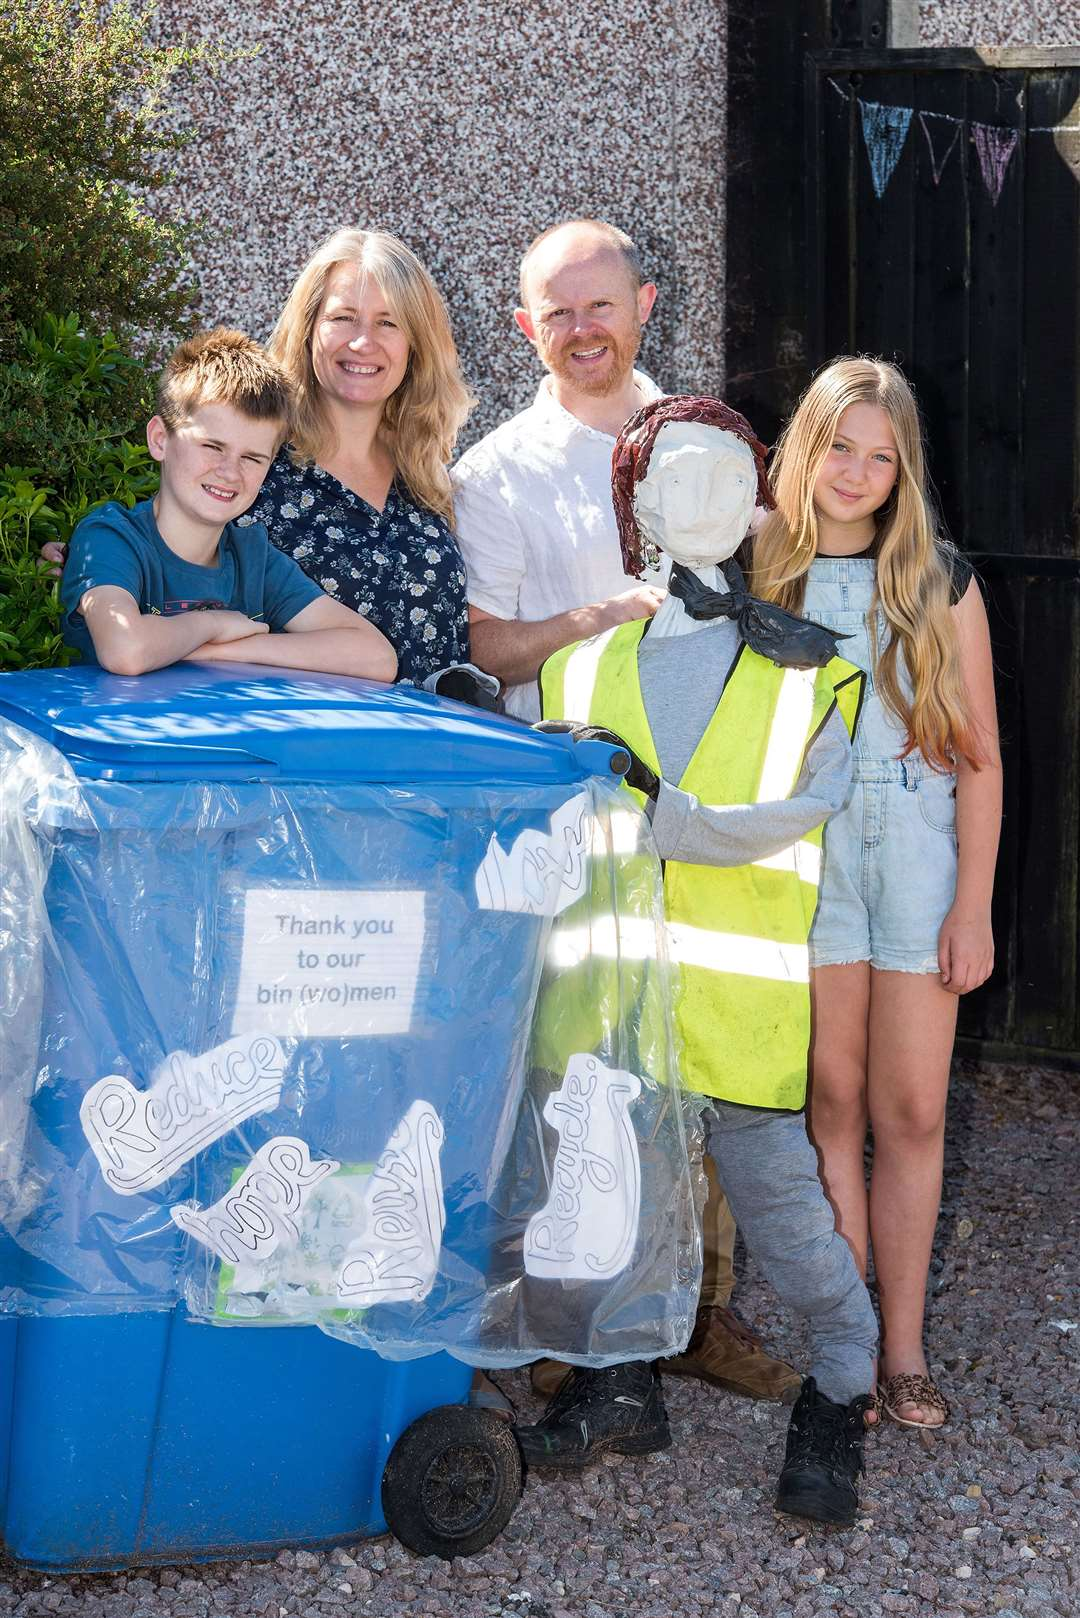 Ketton Scarecrow organisers Matt and Liz Garwood with their children William and Hannah and Beryl the bin woman. Picture by Mark Westley